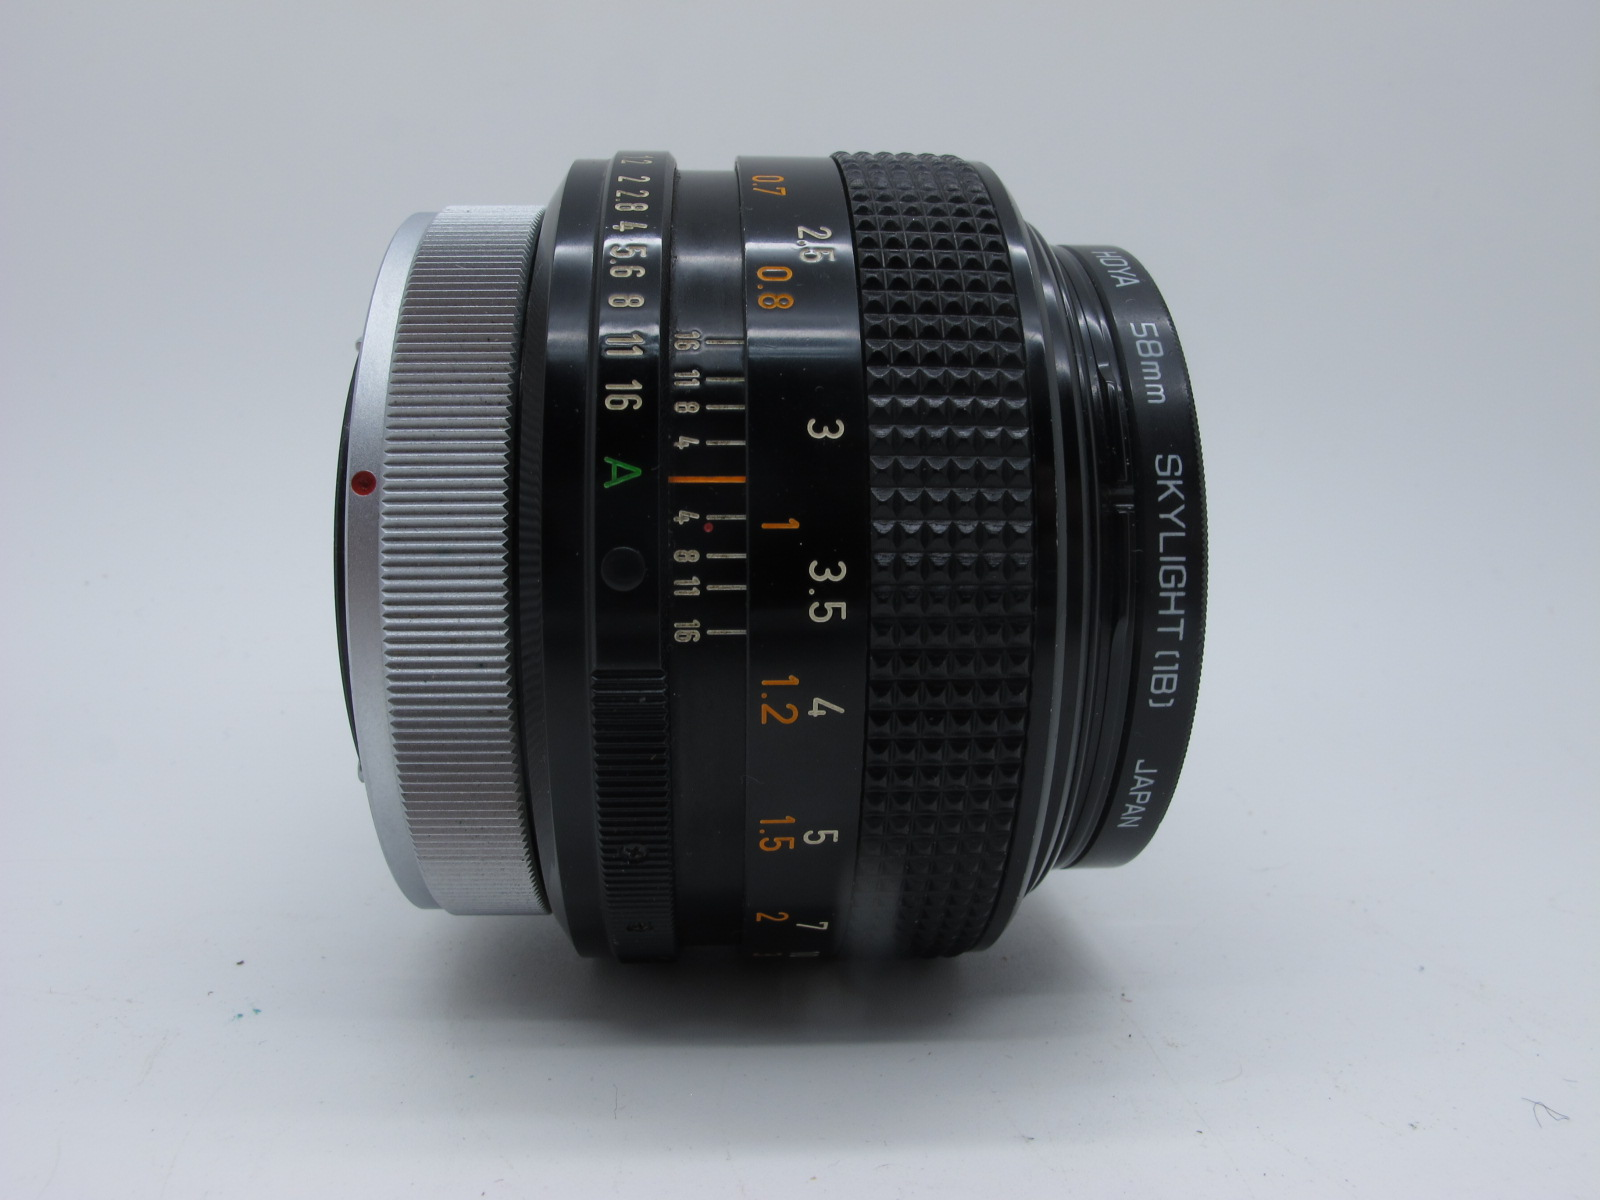 Canon Lens, FD 55mm 1:12 S.S.C. lens, in canvas case. - Image 5 of 6